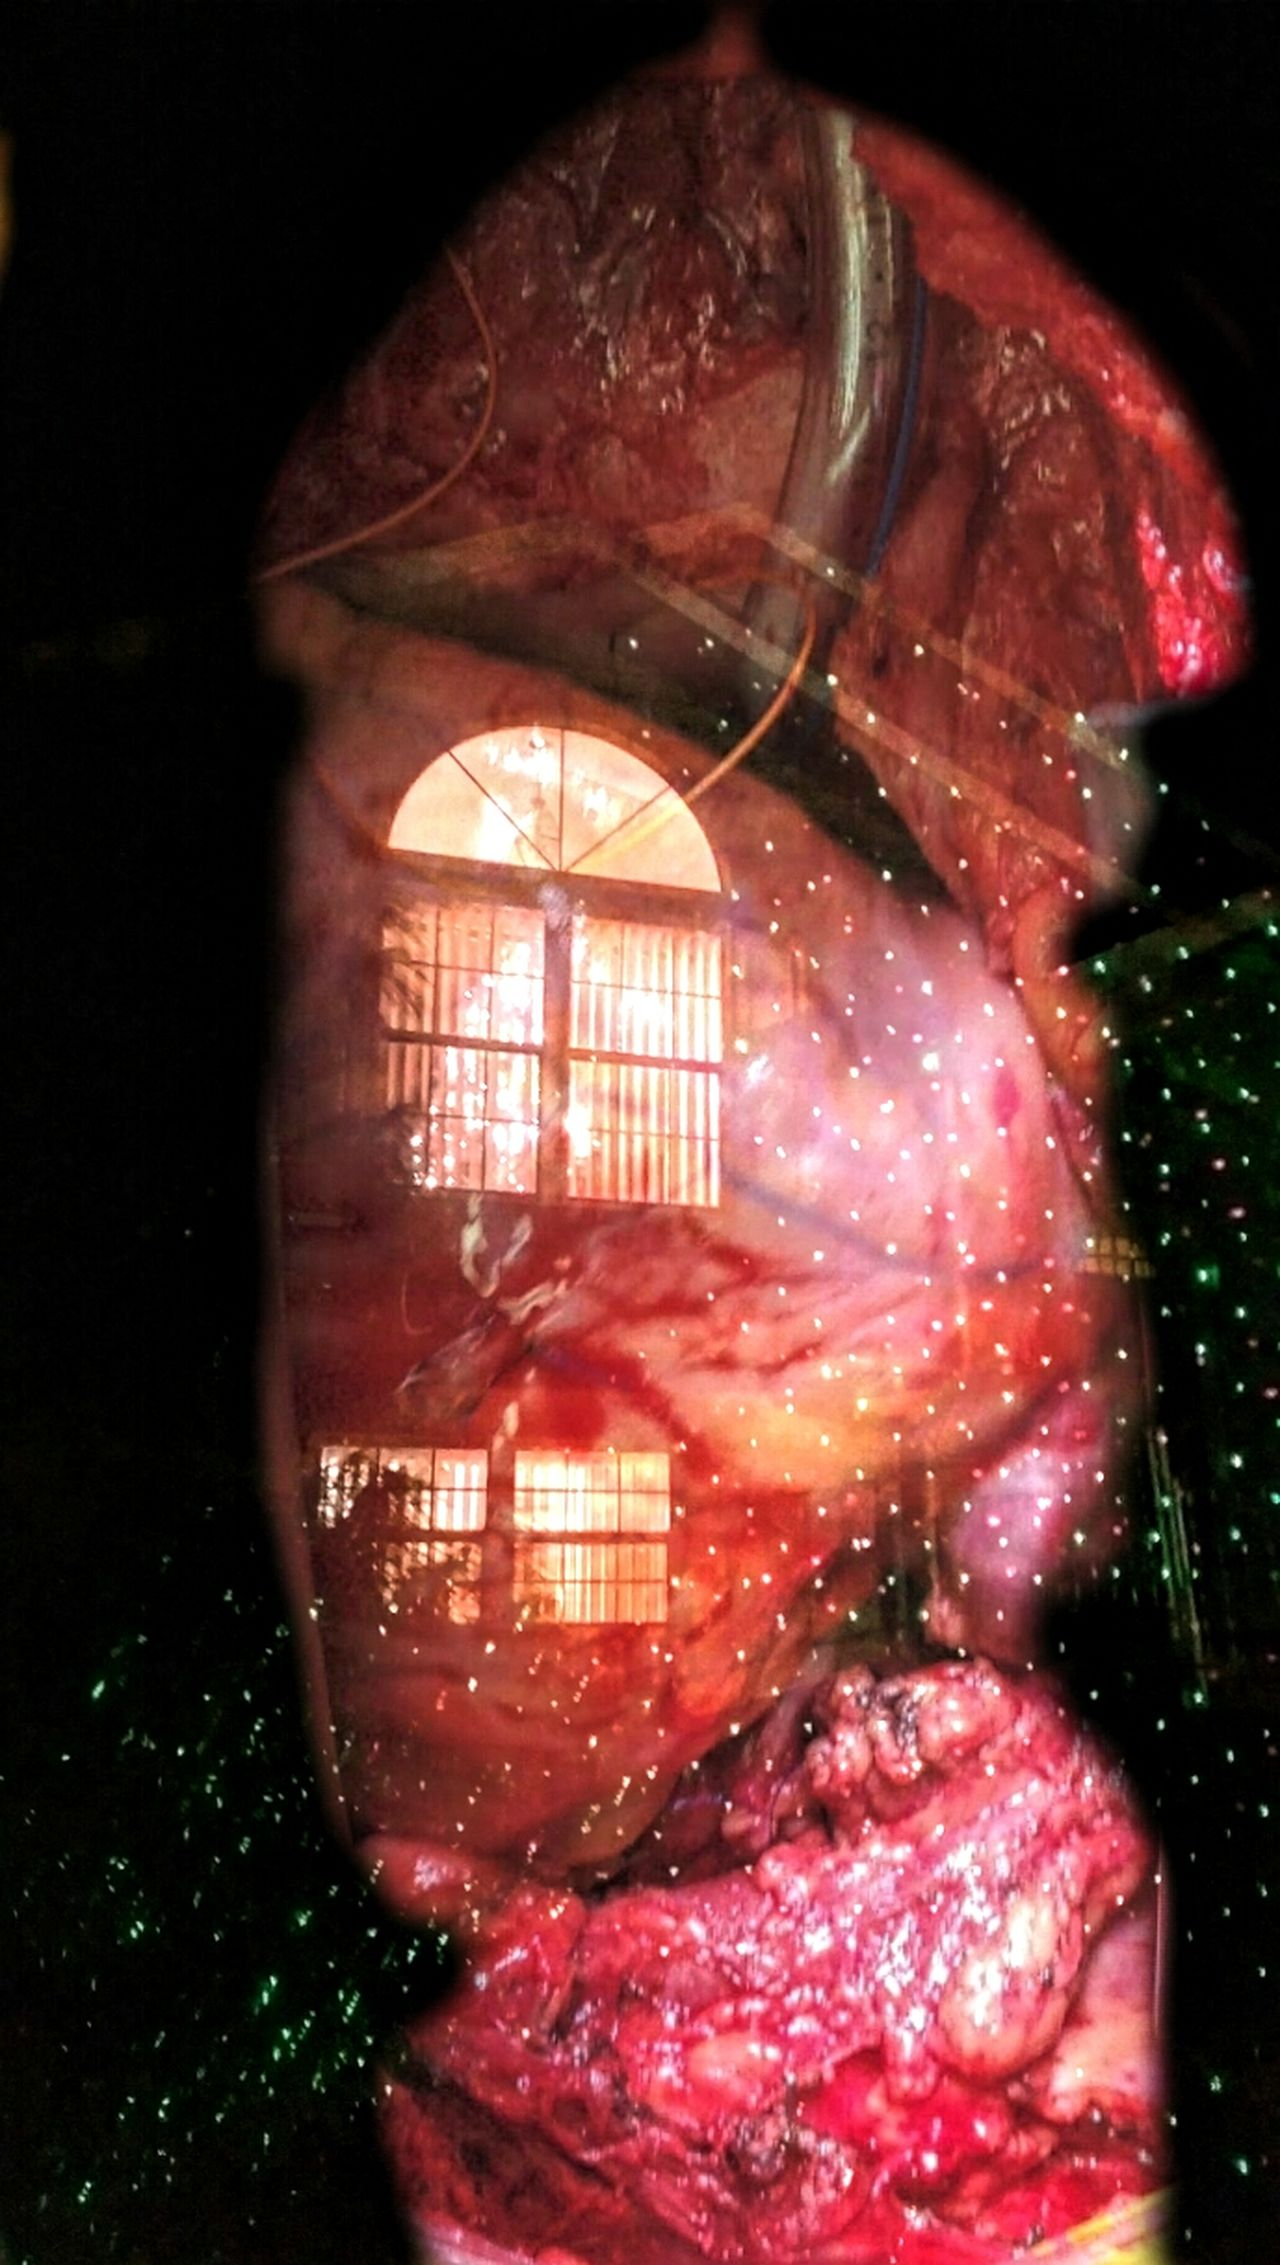 https://youtu.be/lLRU82vMpcQ Guide me back home. Home Is Where The Heart Is Tis The Season The Human Condition Inside Out Alien Light Christmas Decorations Home Tree Home Through The Glass Creative Light And Shadow Musical Photos Lyricalartistry The Impurist Heart